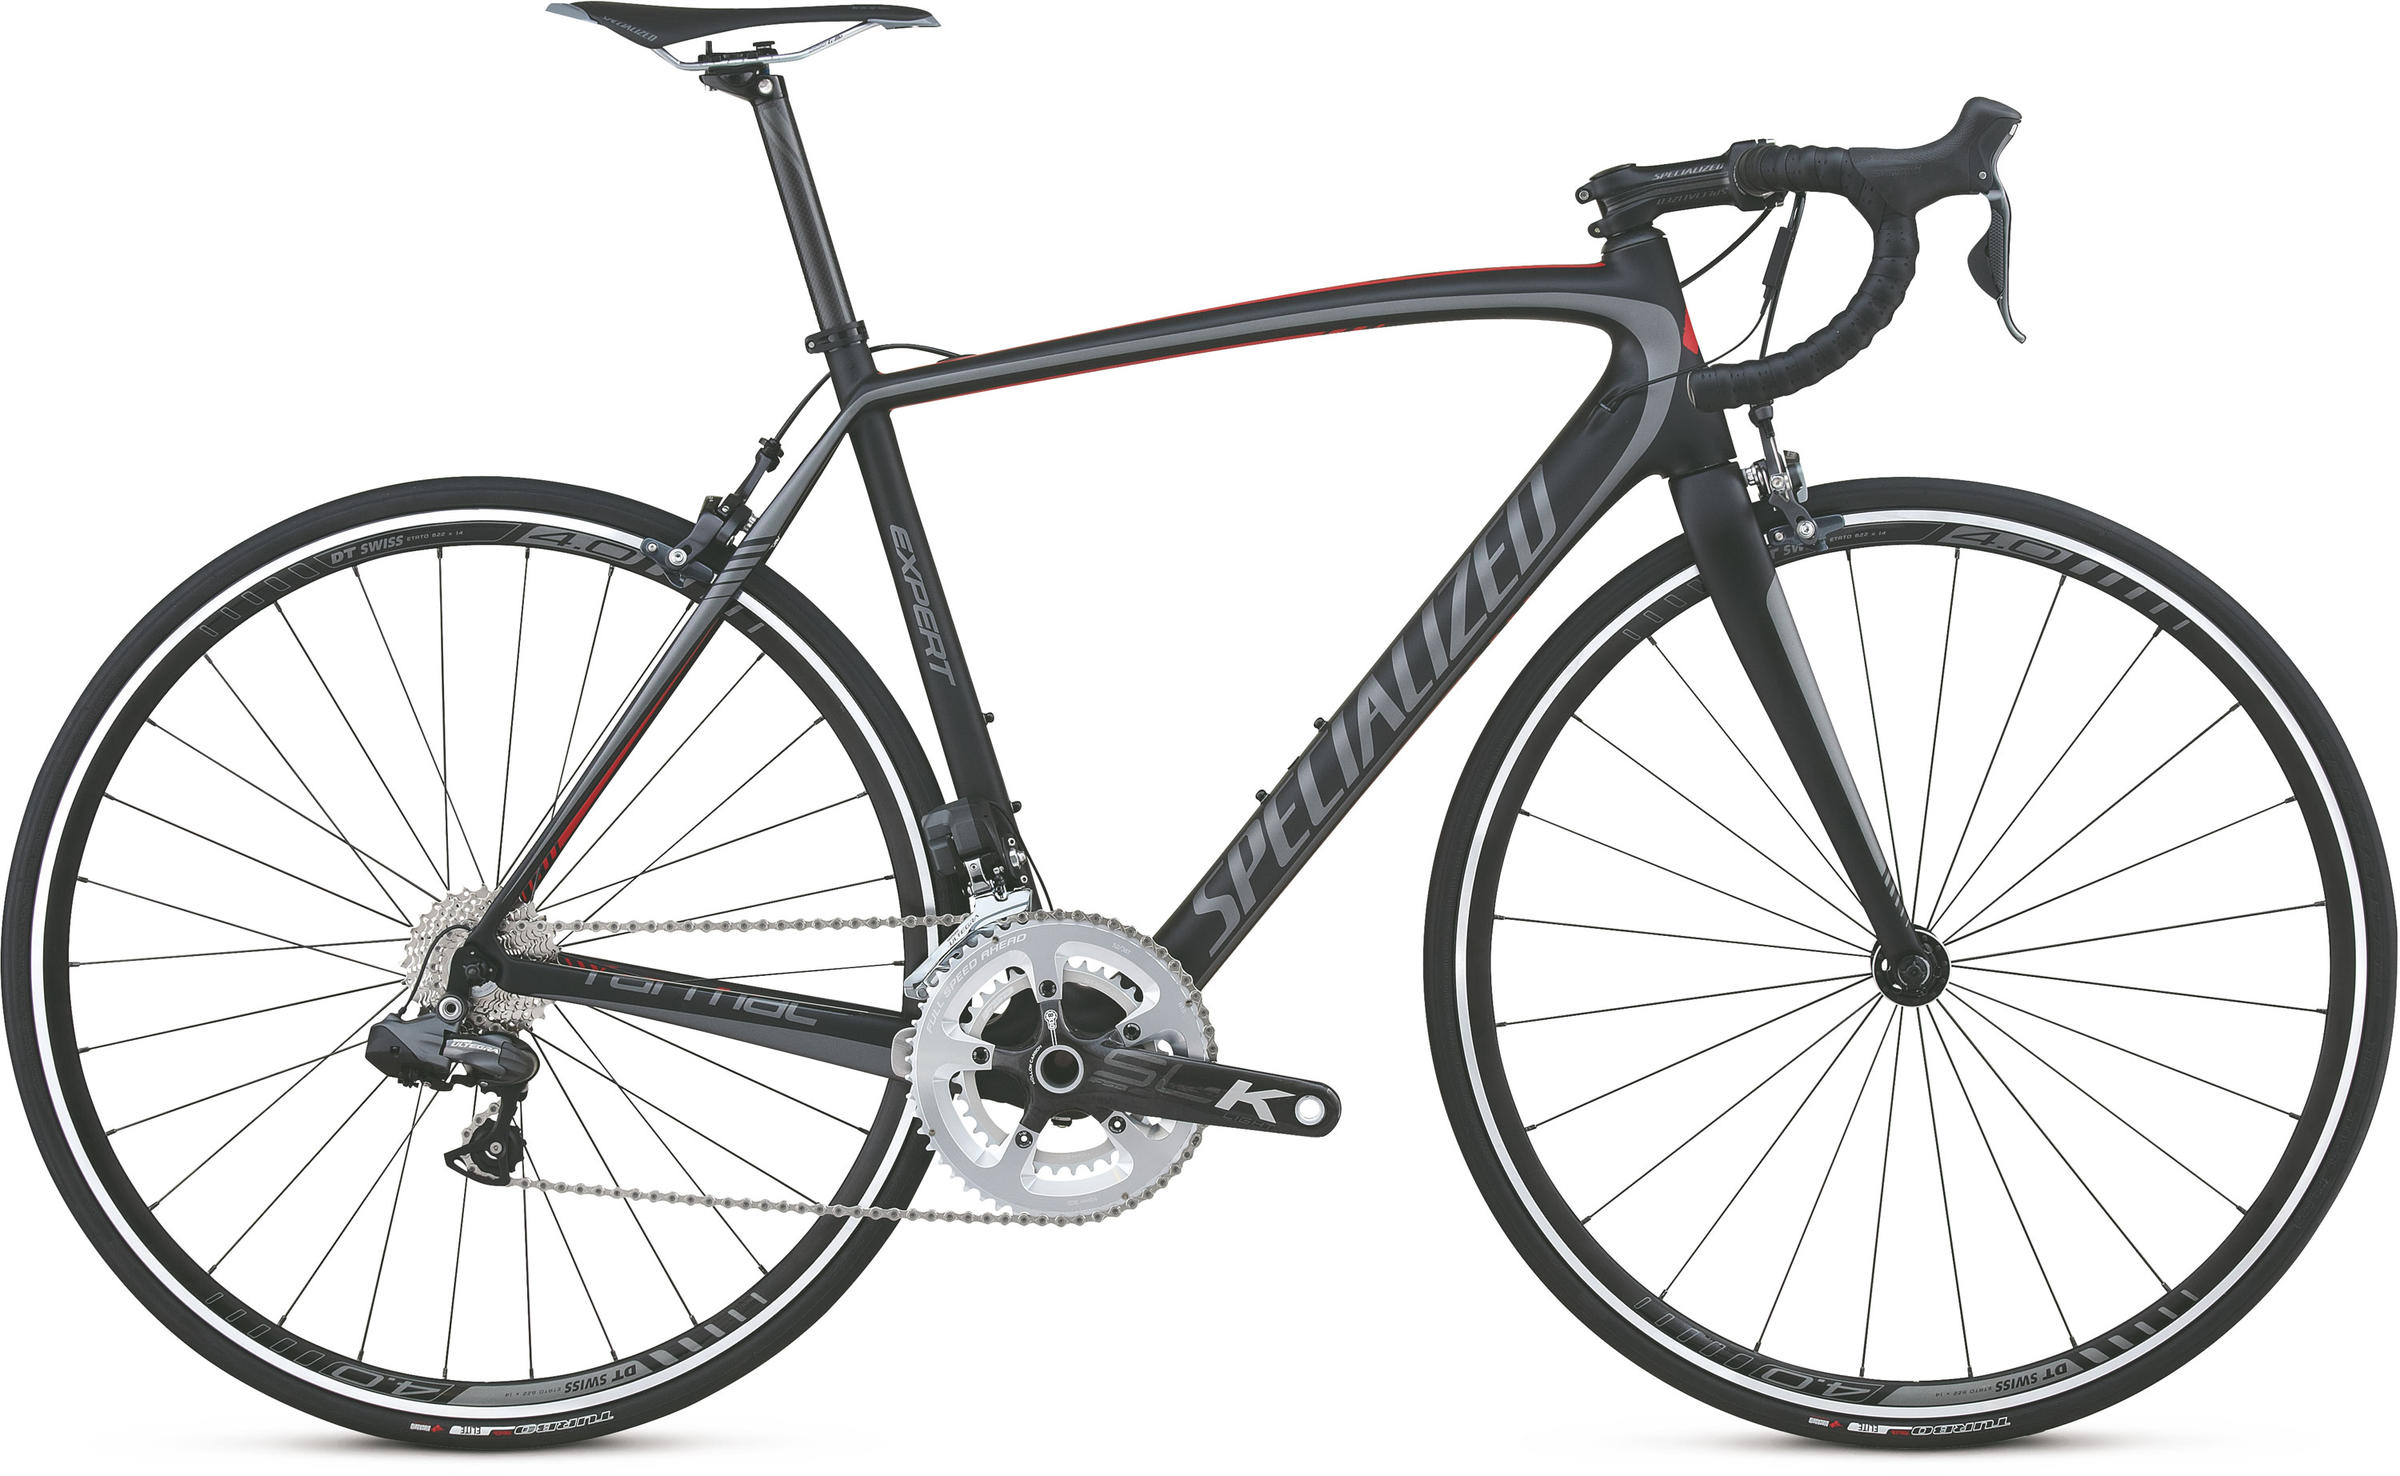 Specialized Tarmac Sl4 Expert Ui2 Mid Compact Www